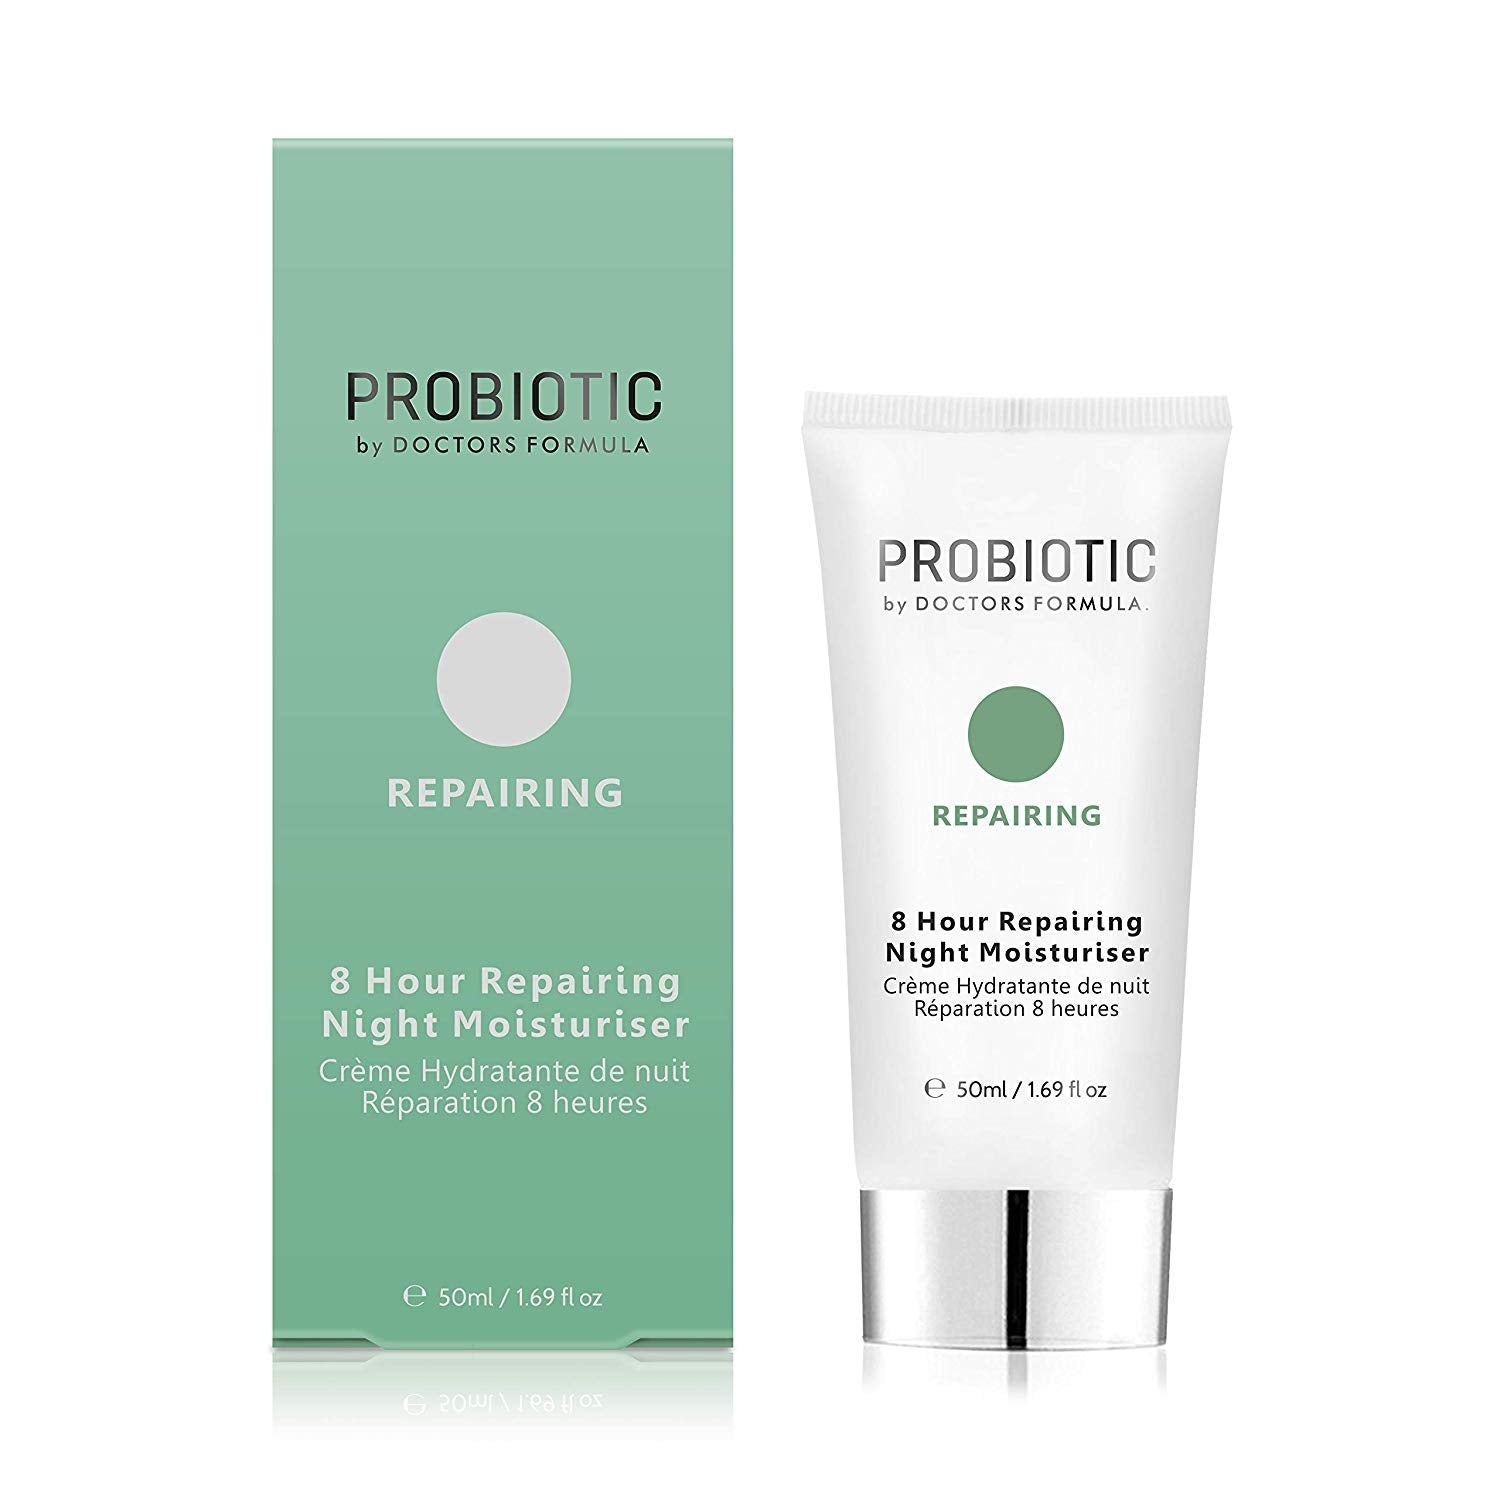 Doctors Formula - Probiotics - 8 Hour Repairing Night Moisturiser 50ml